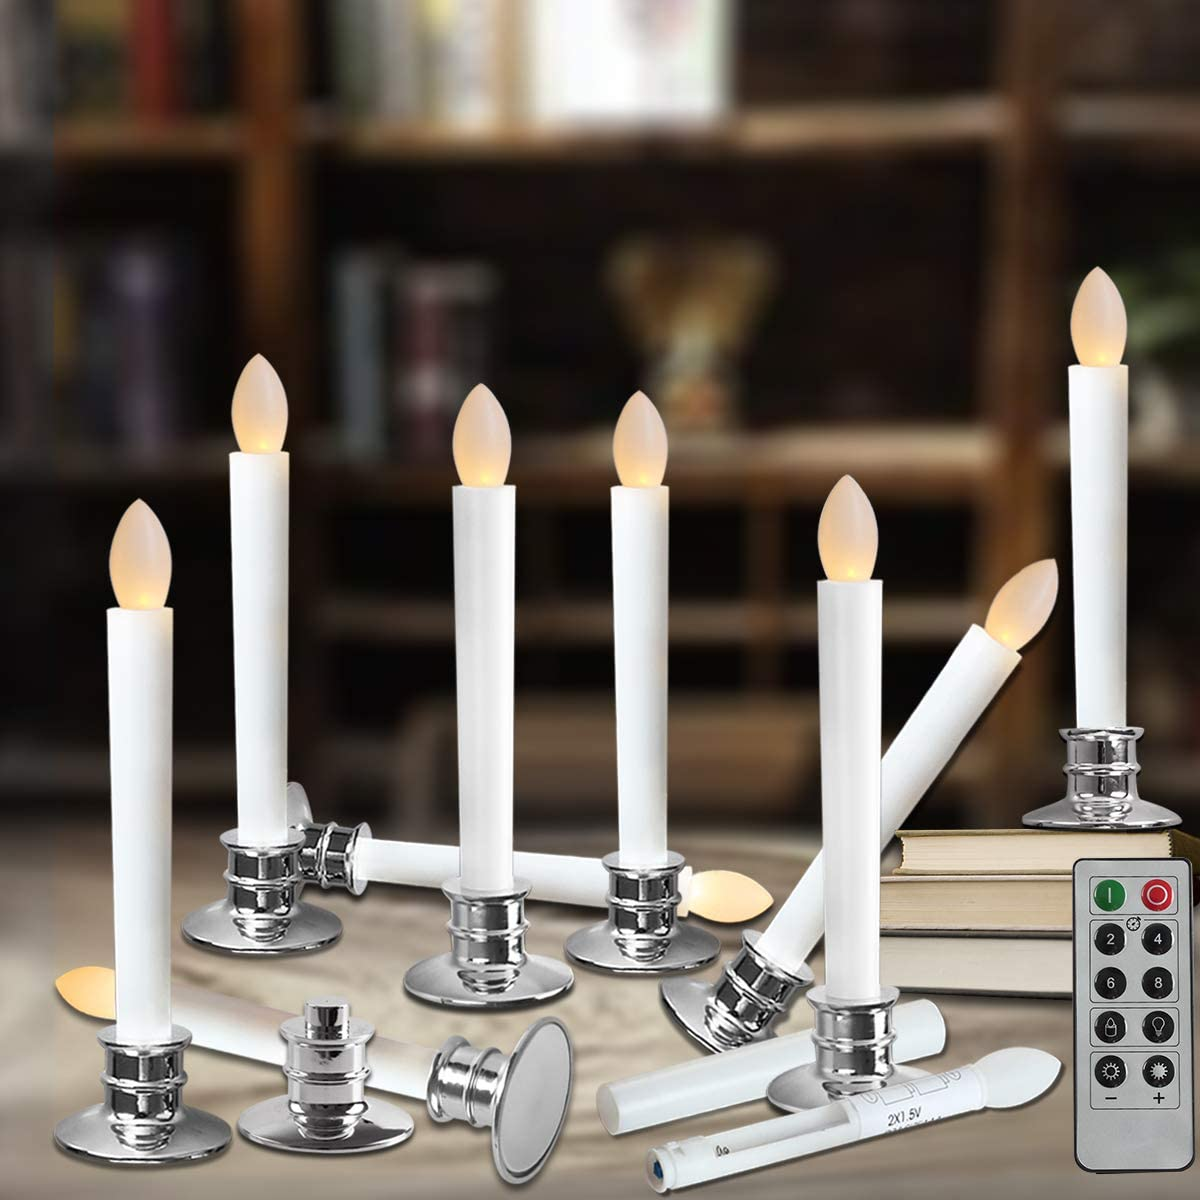 Amazon Com Window Candles With Remote Timers Battery Operated Flickering Flameless Led Electric Candle Lights With Removable Tapers Pillar Candle Holders For Christmas Decorations 10pcs Silver Base Home Kitchen